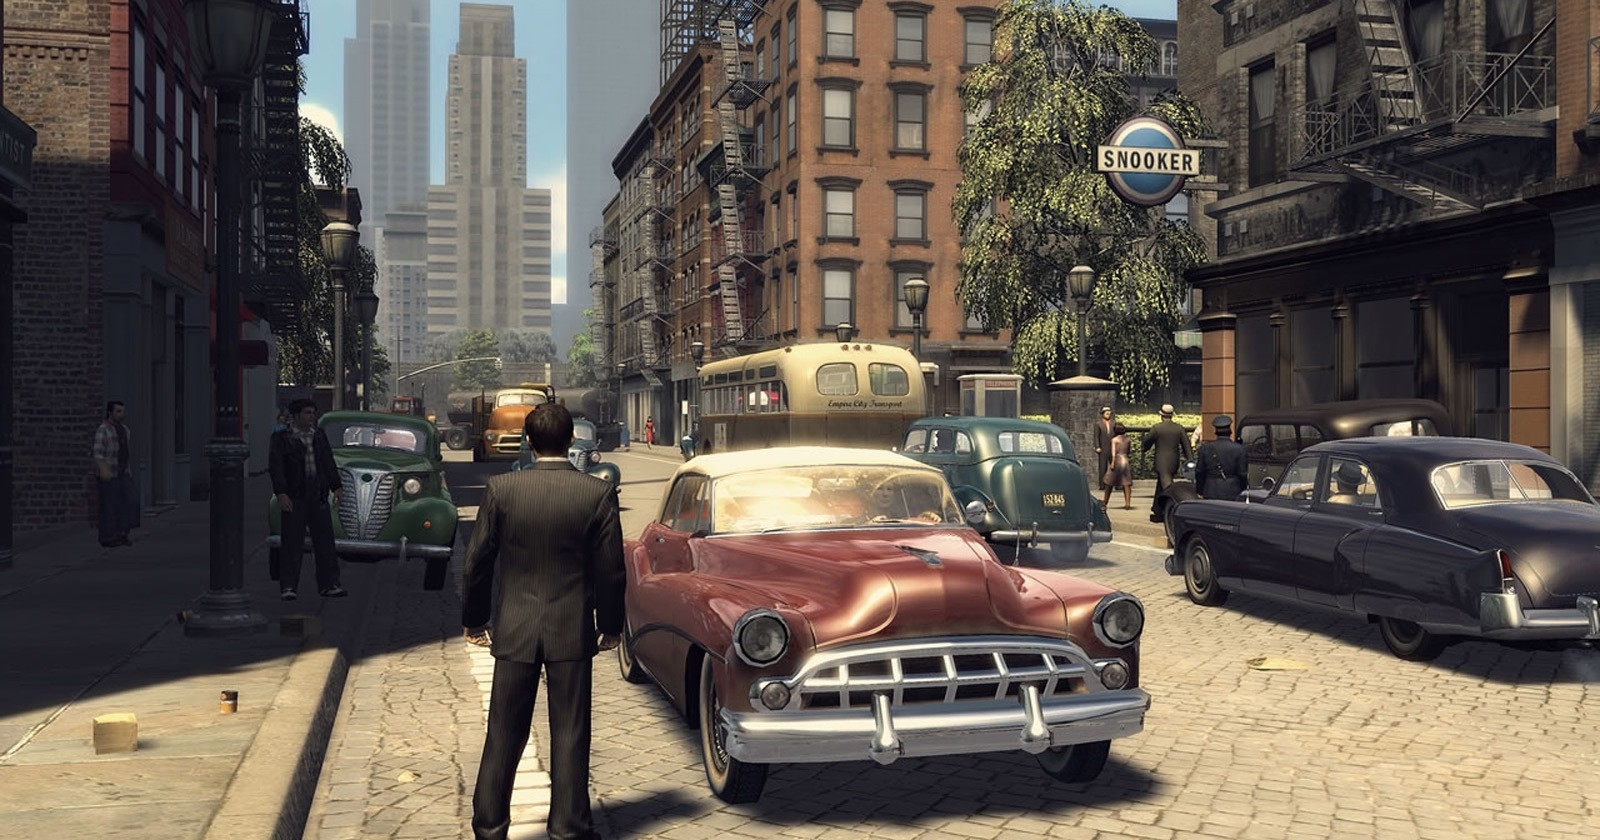 Also see - like Mafia II